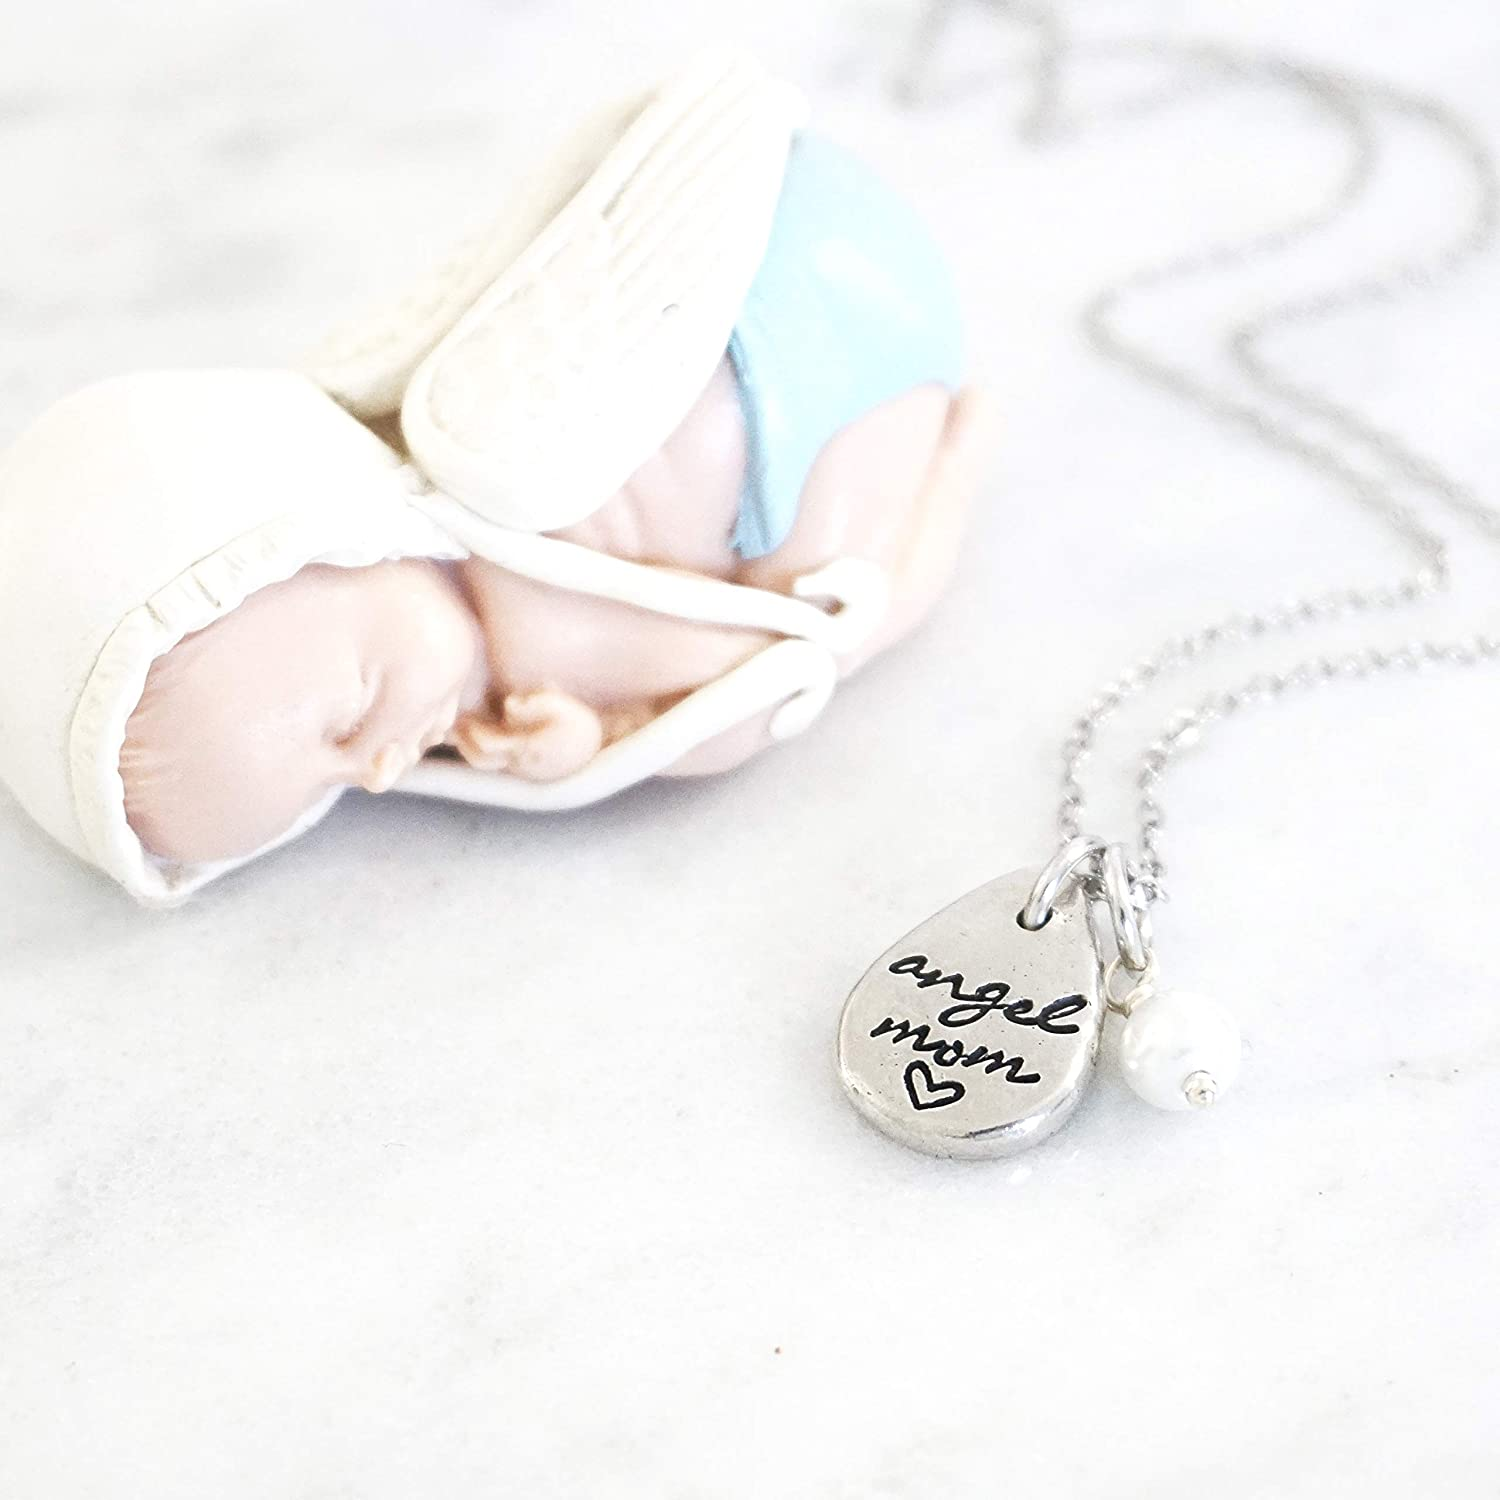 Mom Gift Idea Mother Sympathy Gift Mother Loss Comfort Angel Mother Necklace In Remembrance of Mom Angel Mum Sympathy Loss of Mother